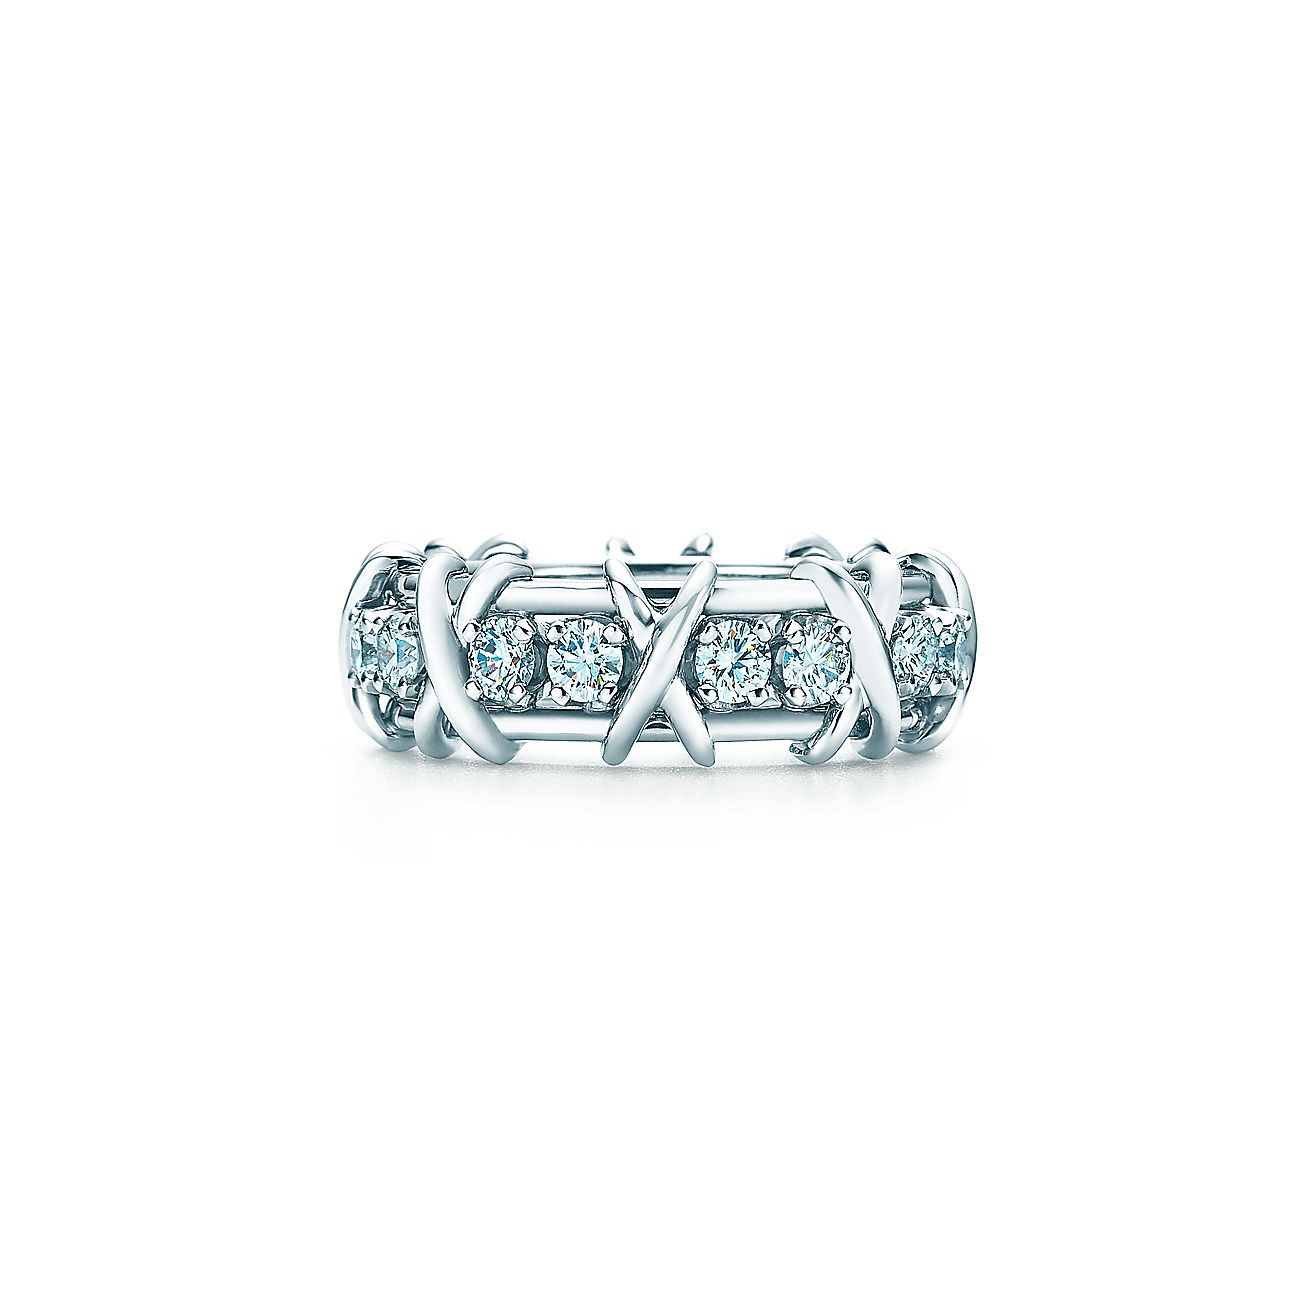 Tiffany And Co Sixteen Stone Ring Price